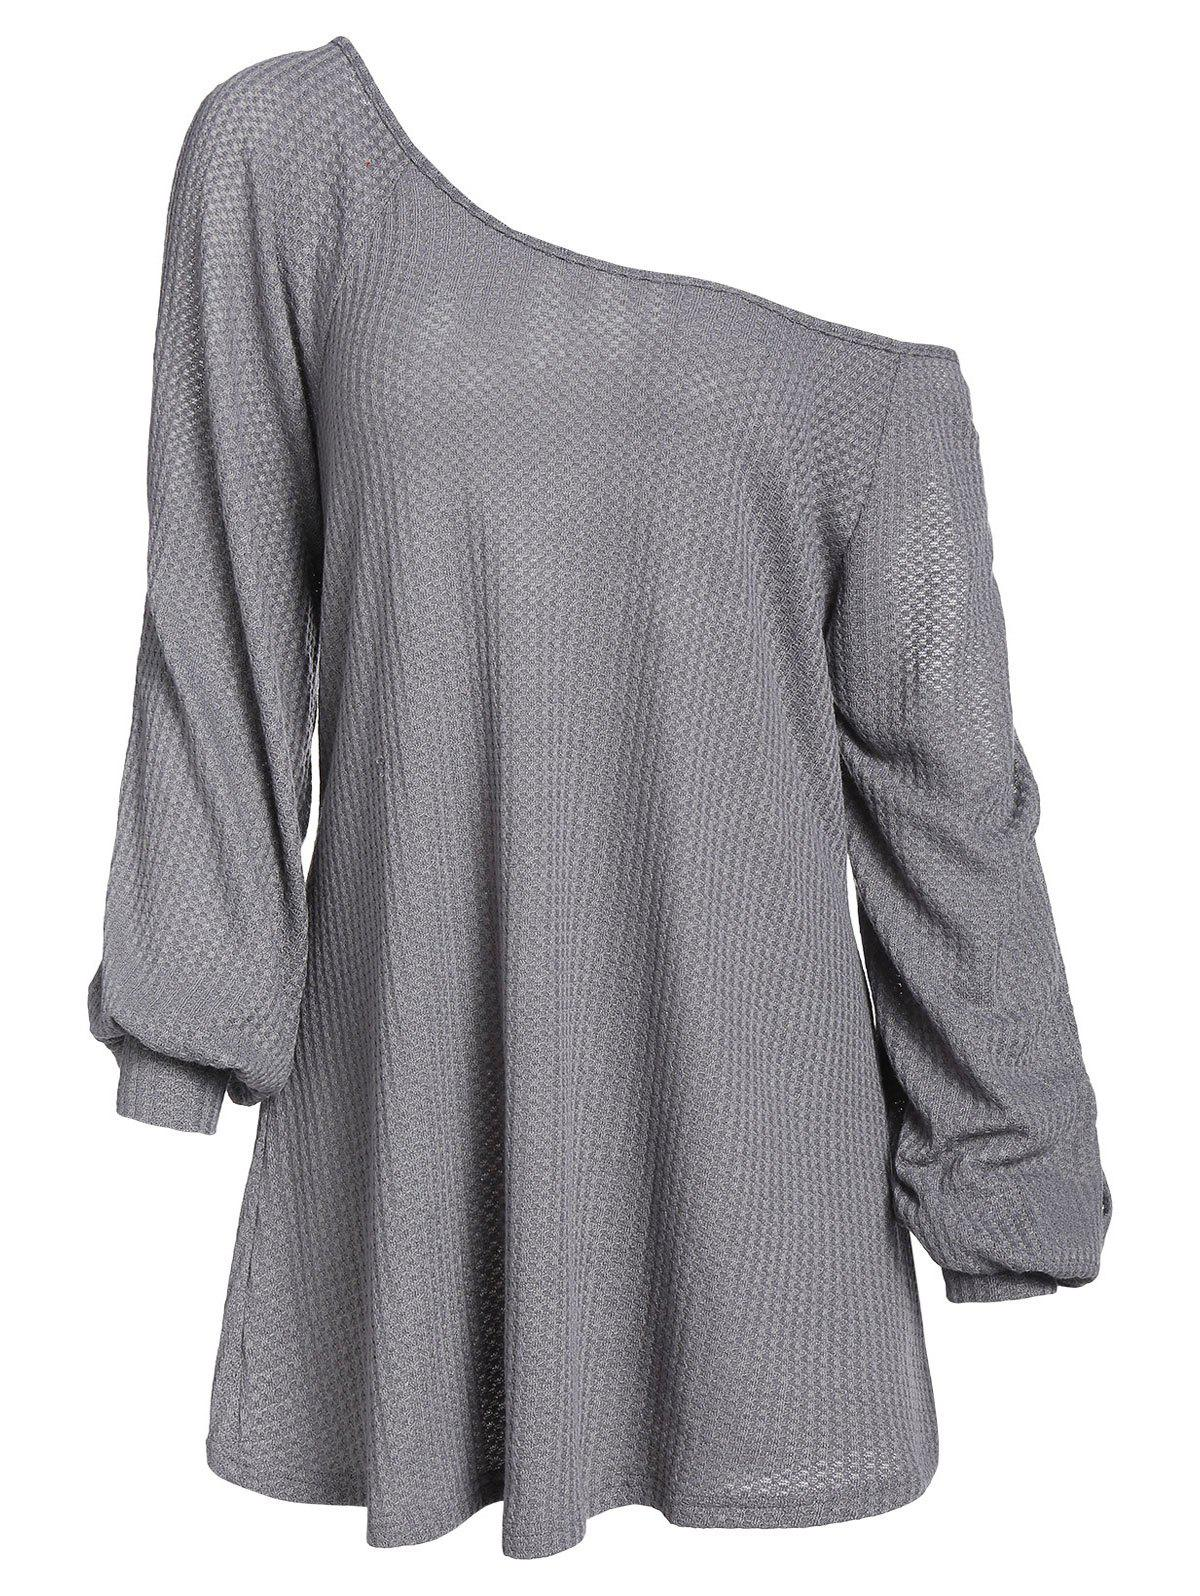 Plus Size Skew Collar Solid Tunic Sweater - SMOKEY GRAY L